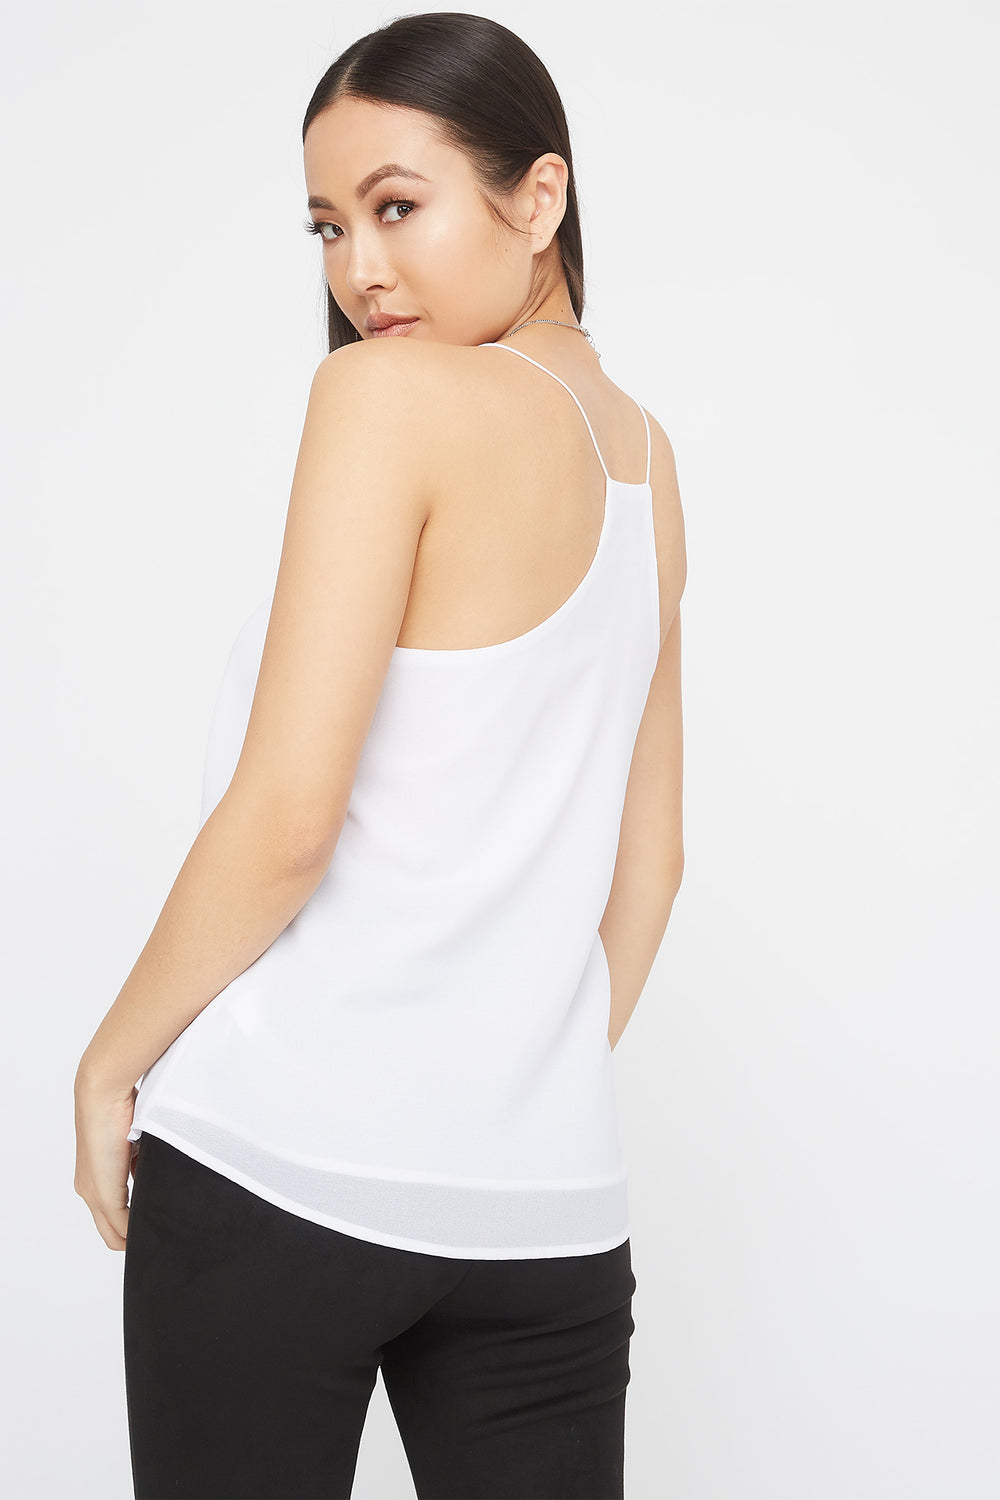 V-Neck Racer Back Lace Trim Cami White